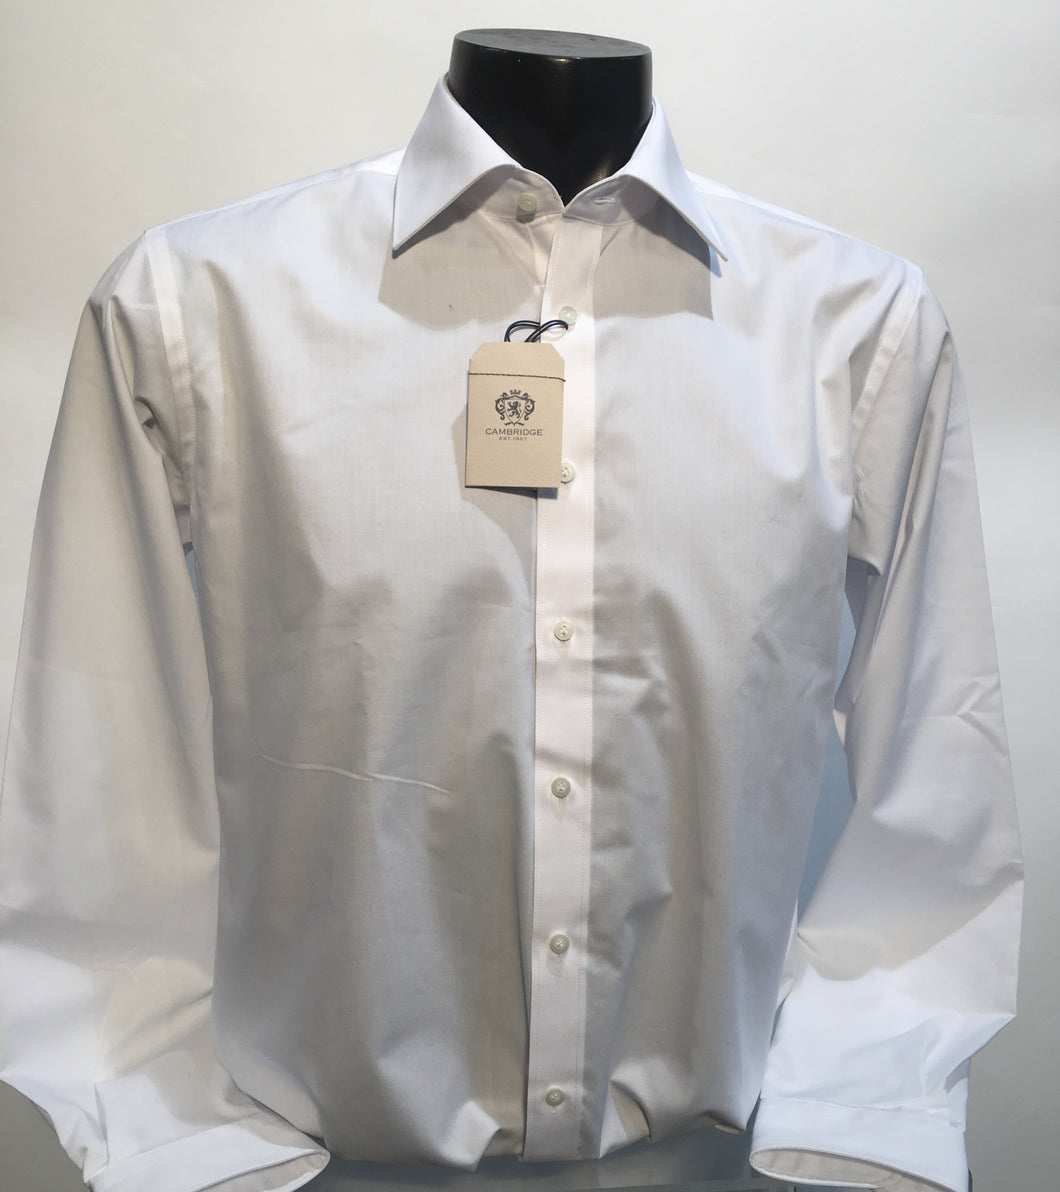 Cambridge classic white shirt